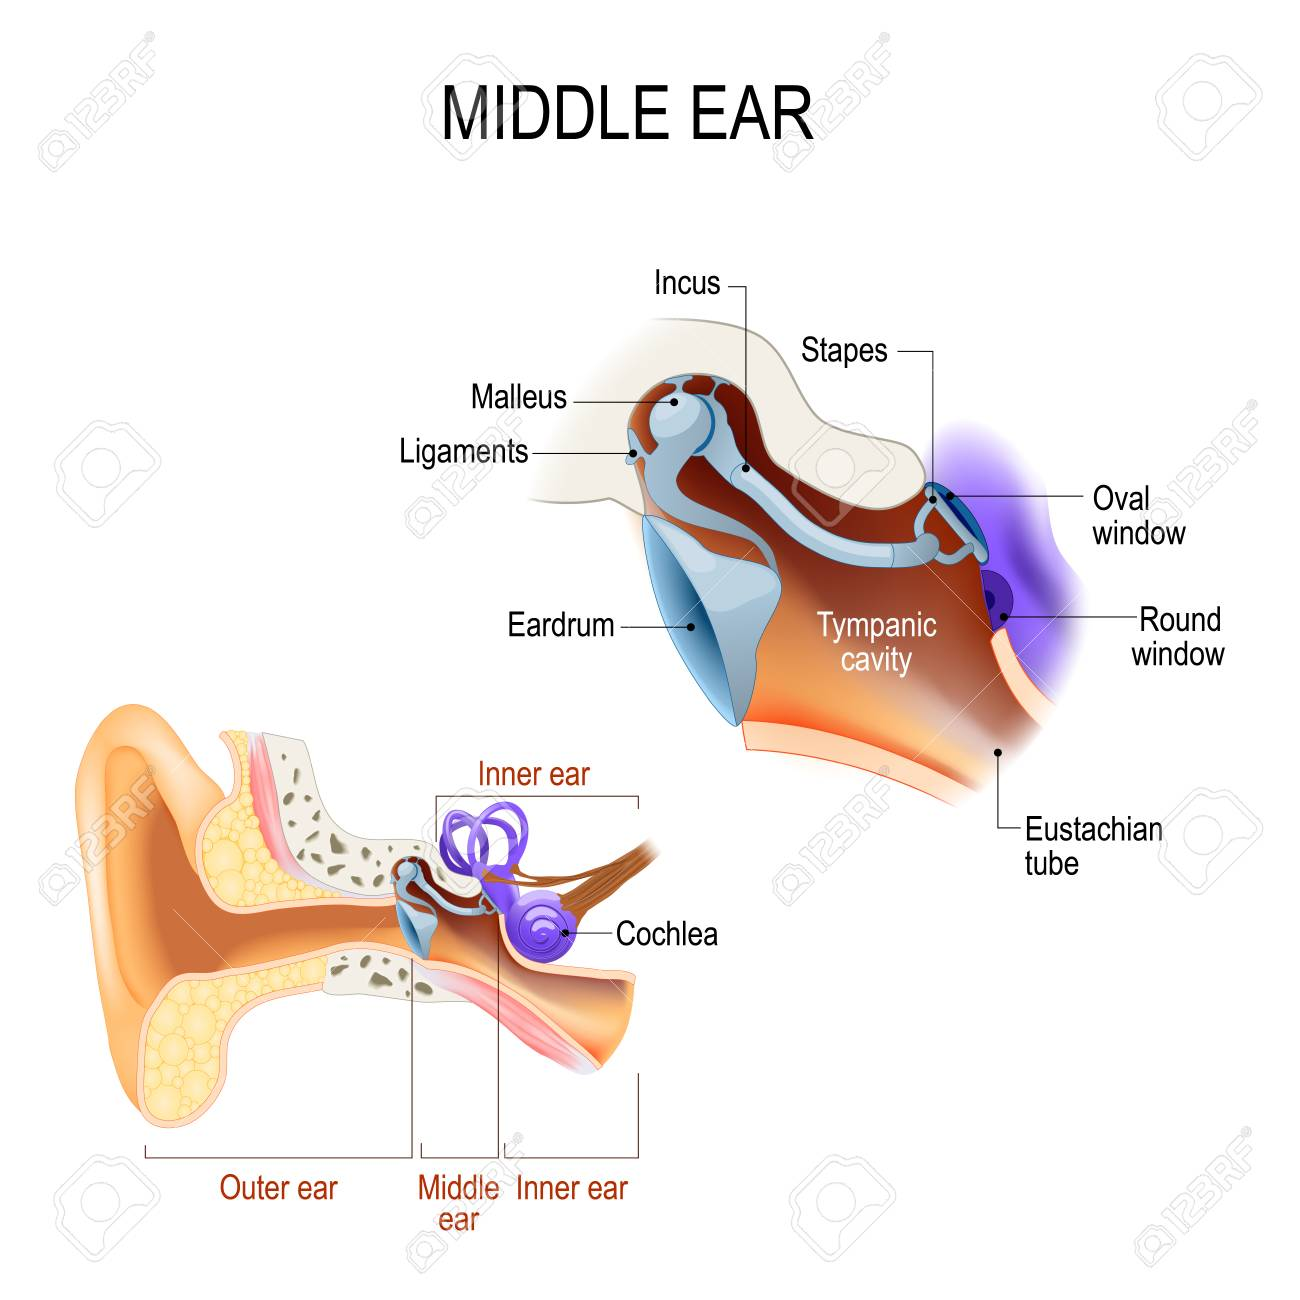 hight resolution of diagram of the anatomy of the human ear three ossicles malleus incus and stapes hammer anvil and stirrup the ossicles directly couple sound energy